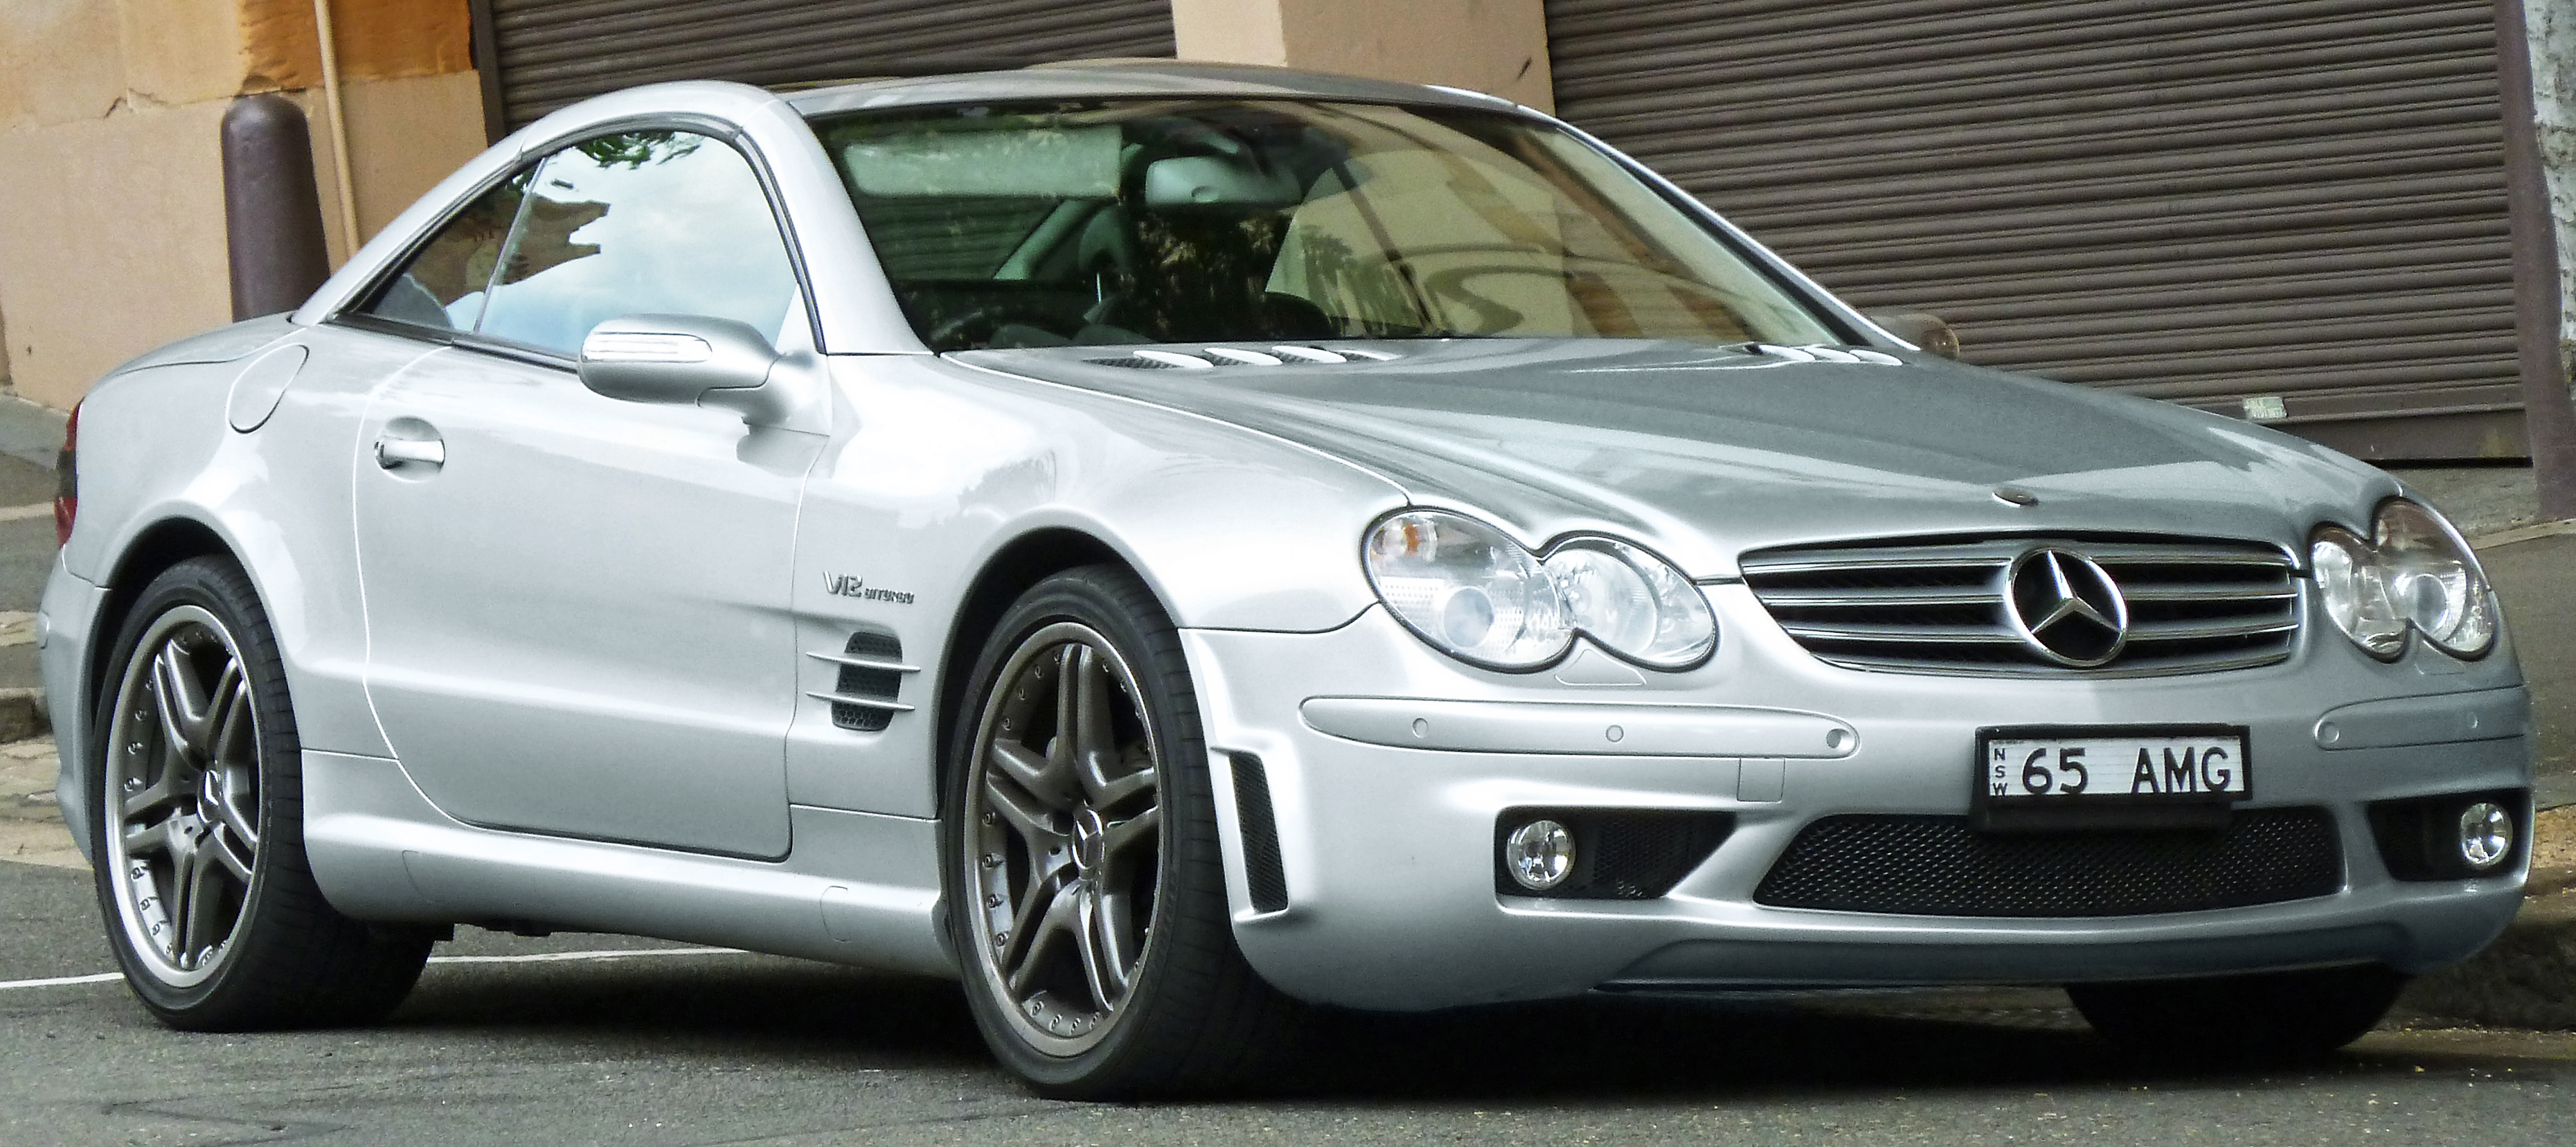 Image gallery mb sl65 2006 for 2006 mercedes benz amg